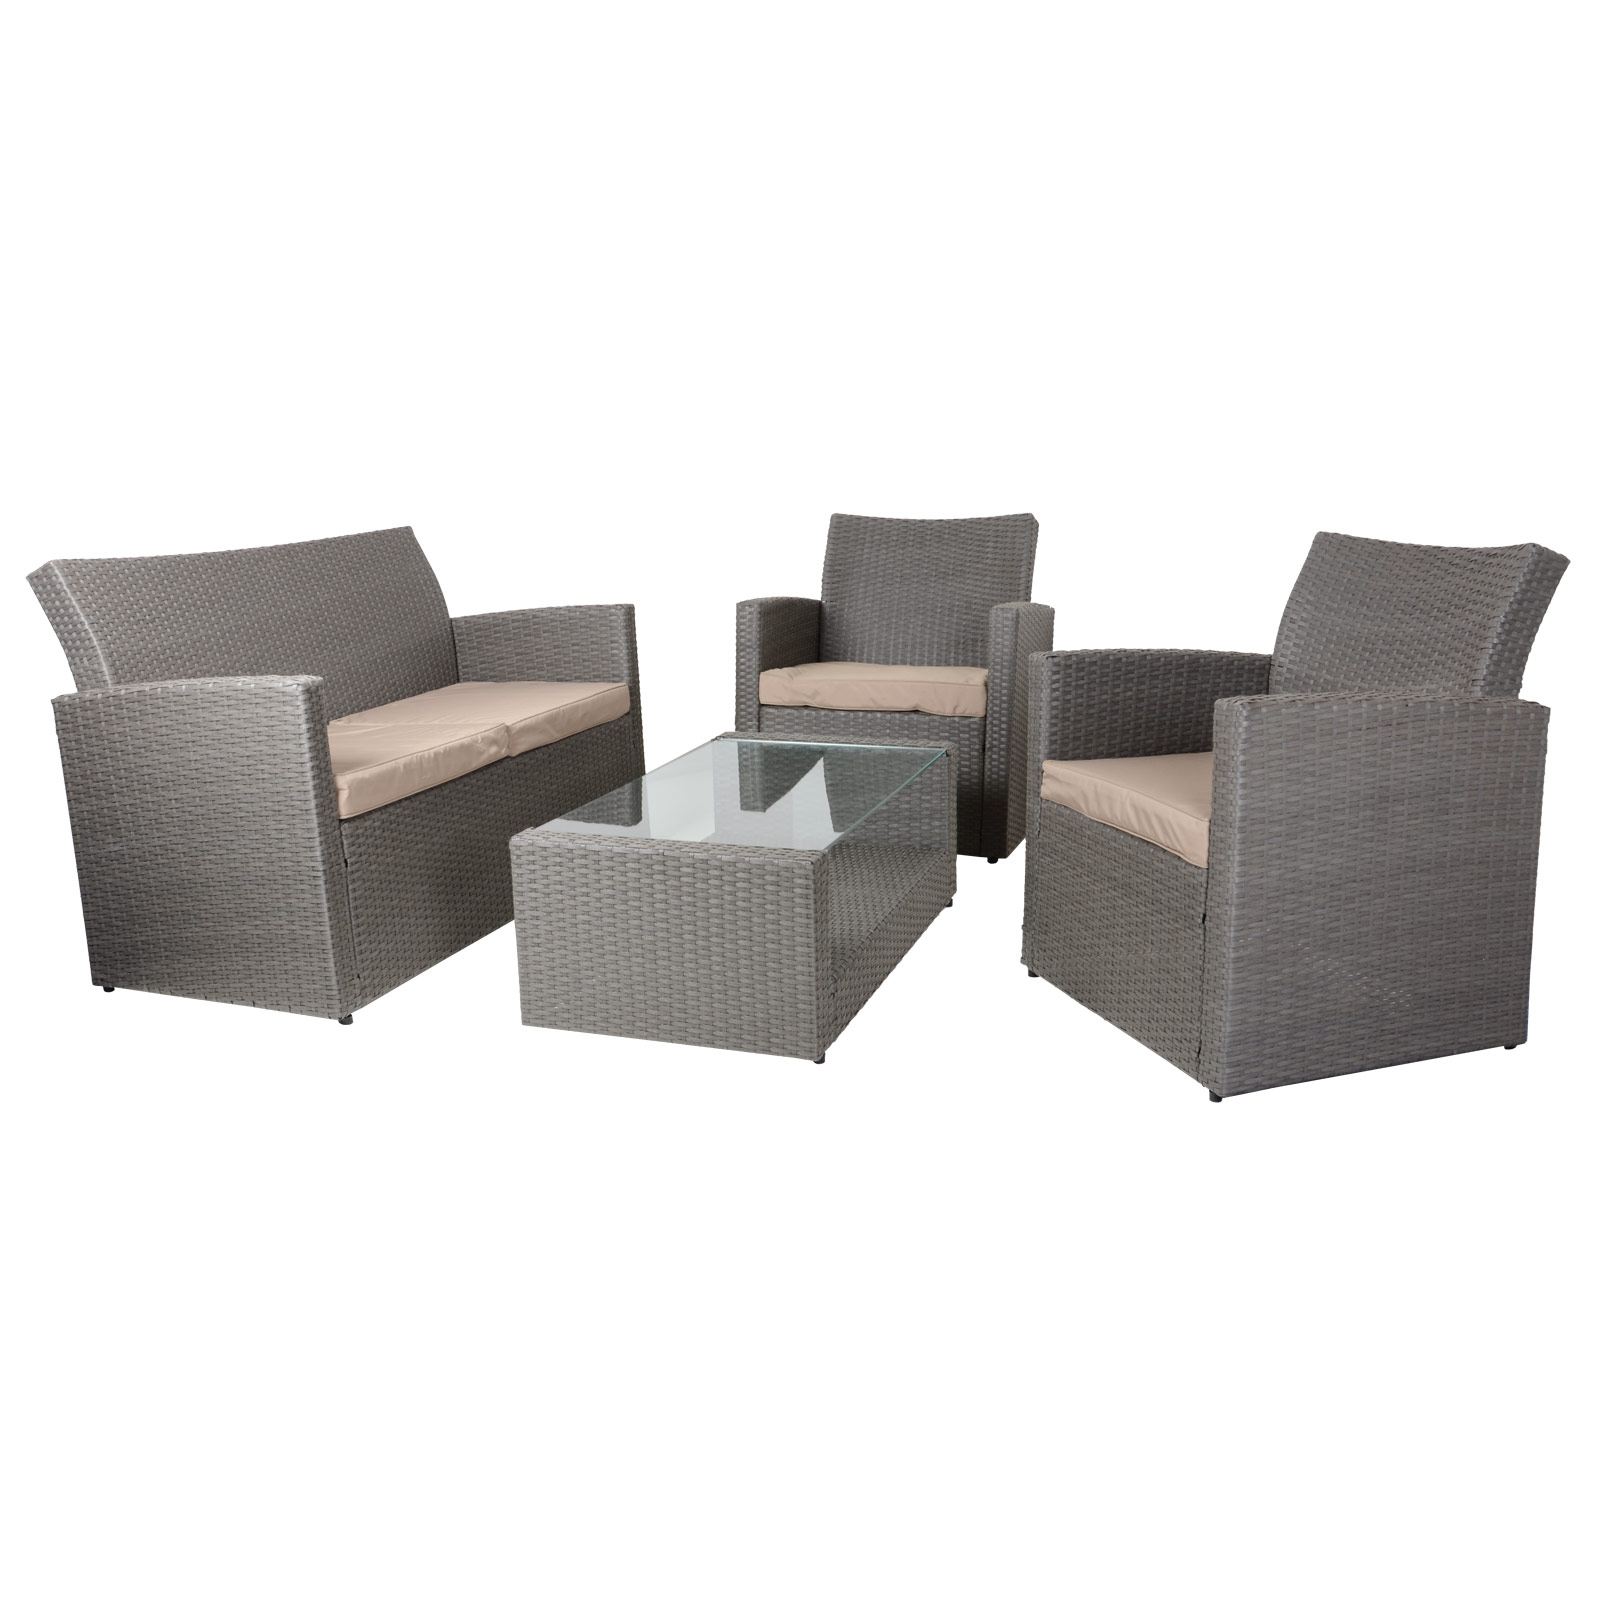 Rattan Sofa Set Ebay 4pc Tuscany Rattan Wicker Sofa Set Garden Conservatory